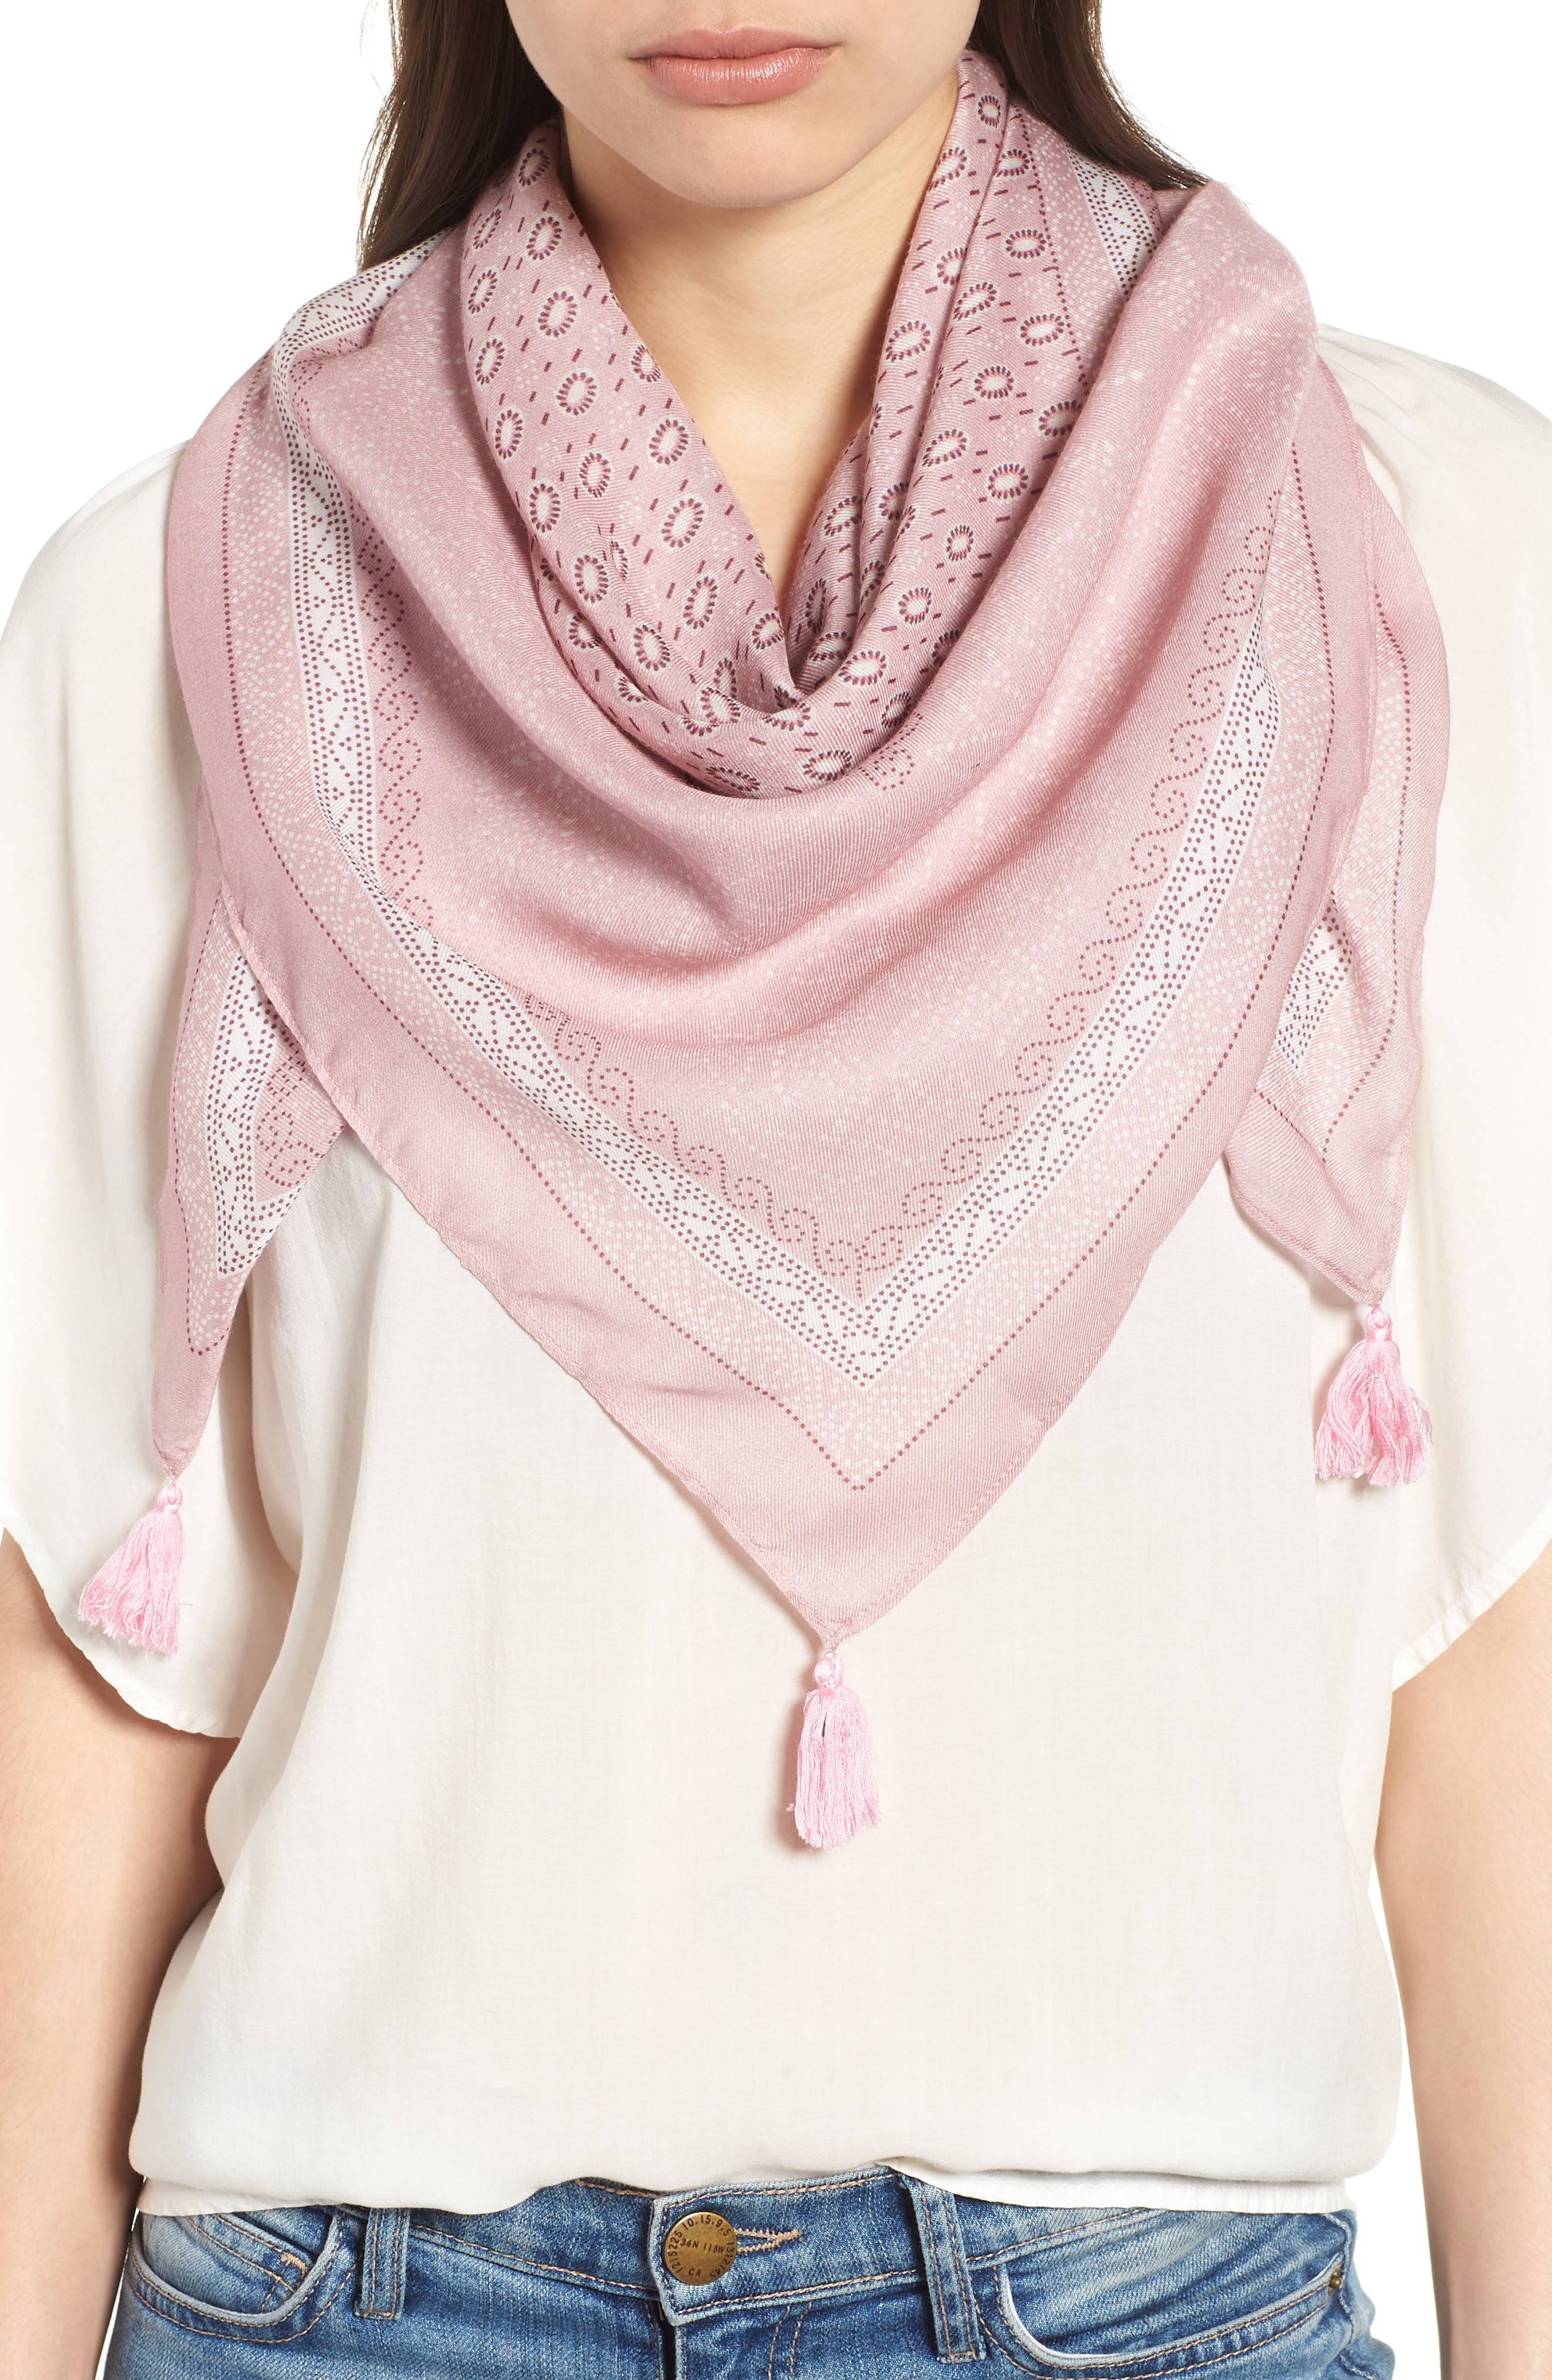 REBECCA MINKOFF,                             Dot Floral Large Square Scarf,                             Main thumbnail 1, color,                             650